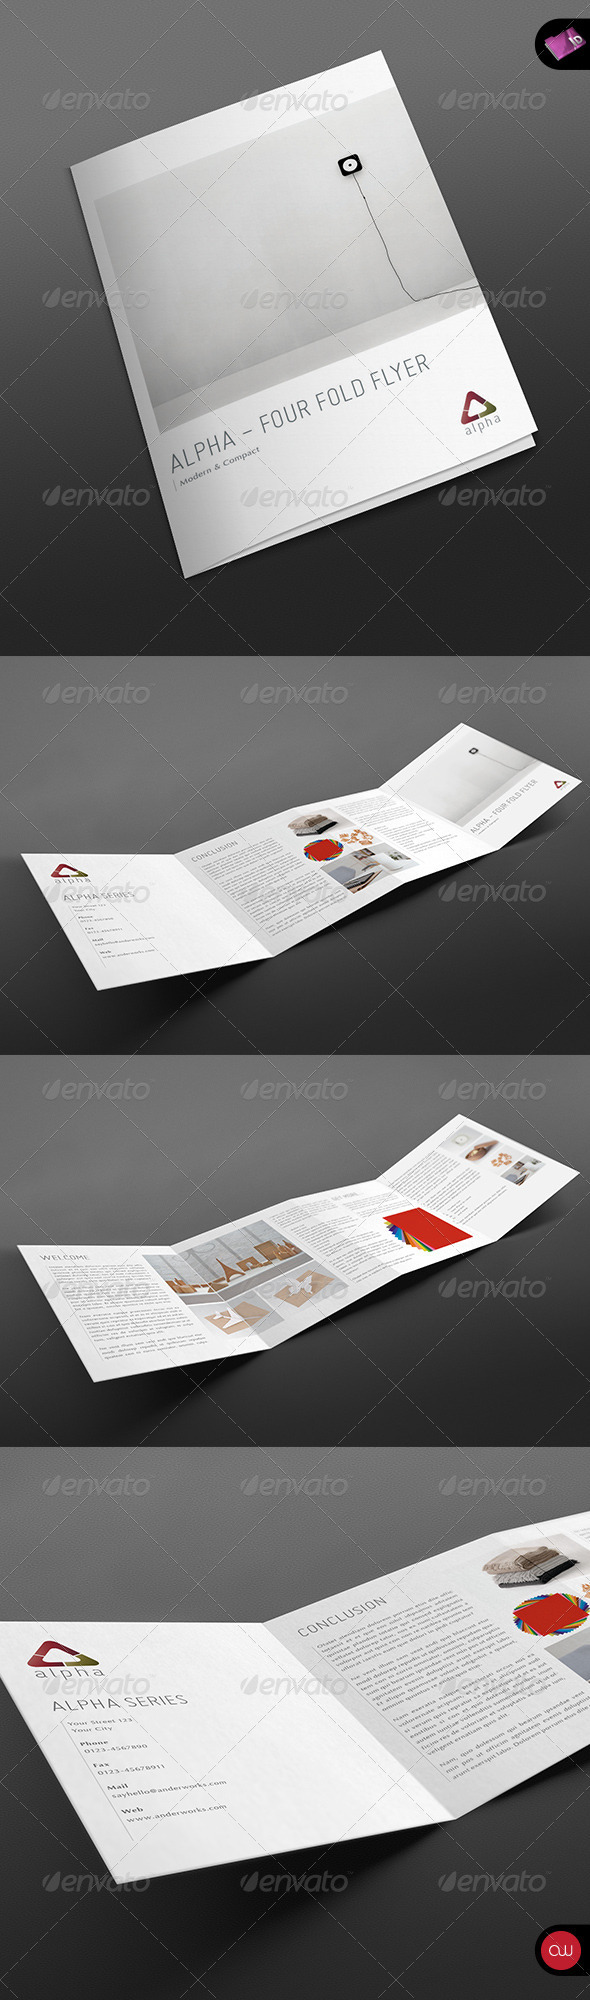 4-fold Brochure Template - Vol.2 - Corporate Flyers